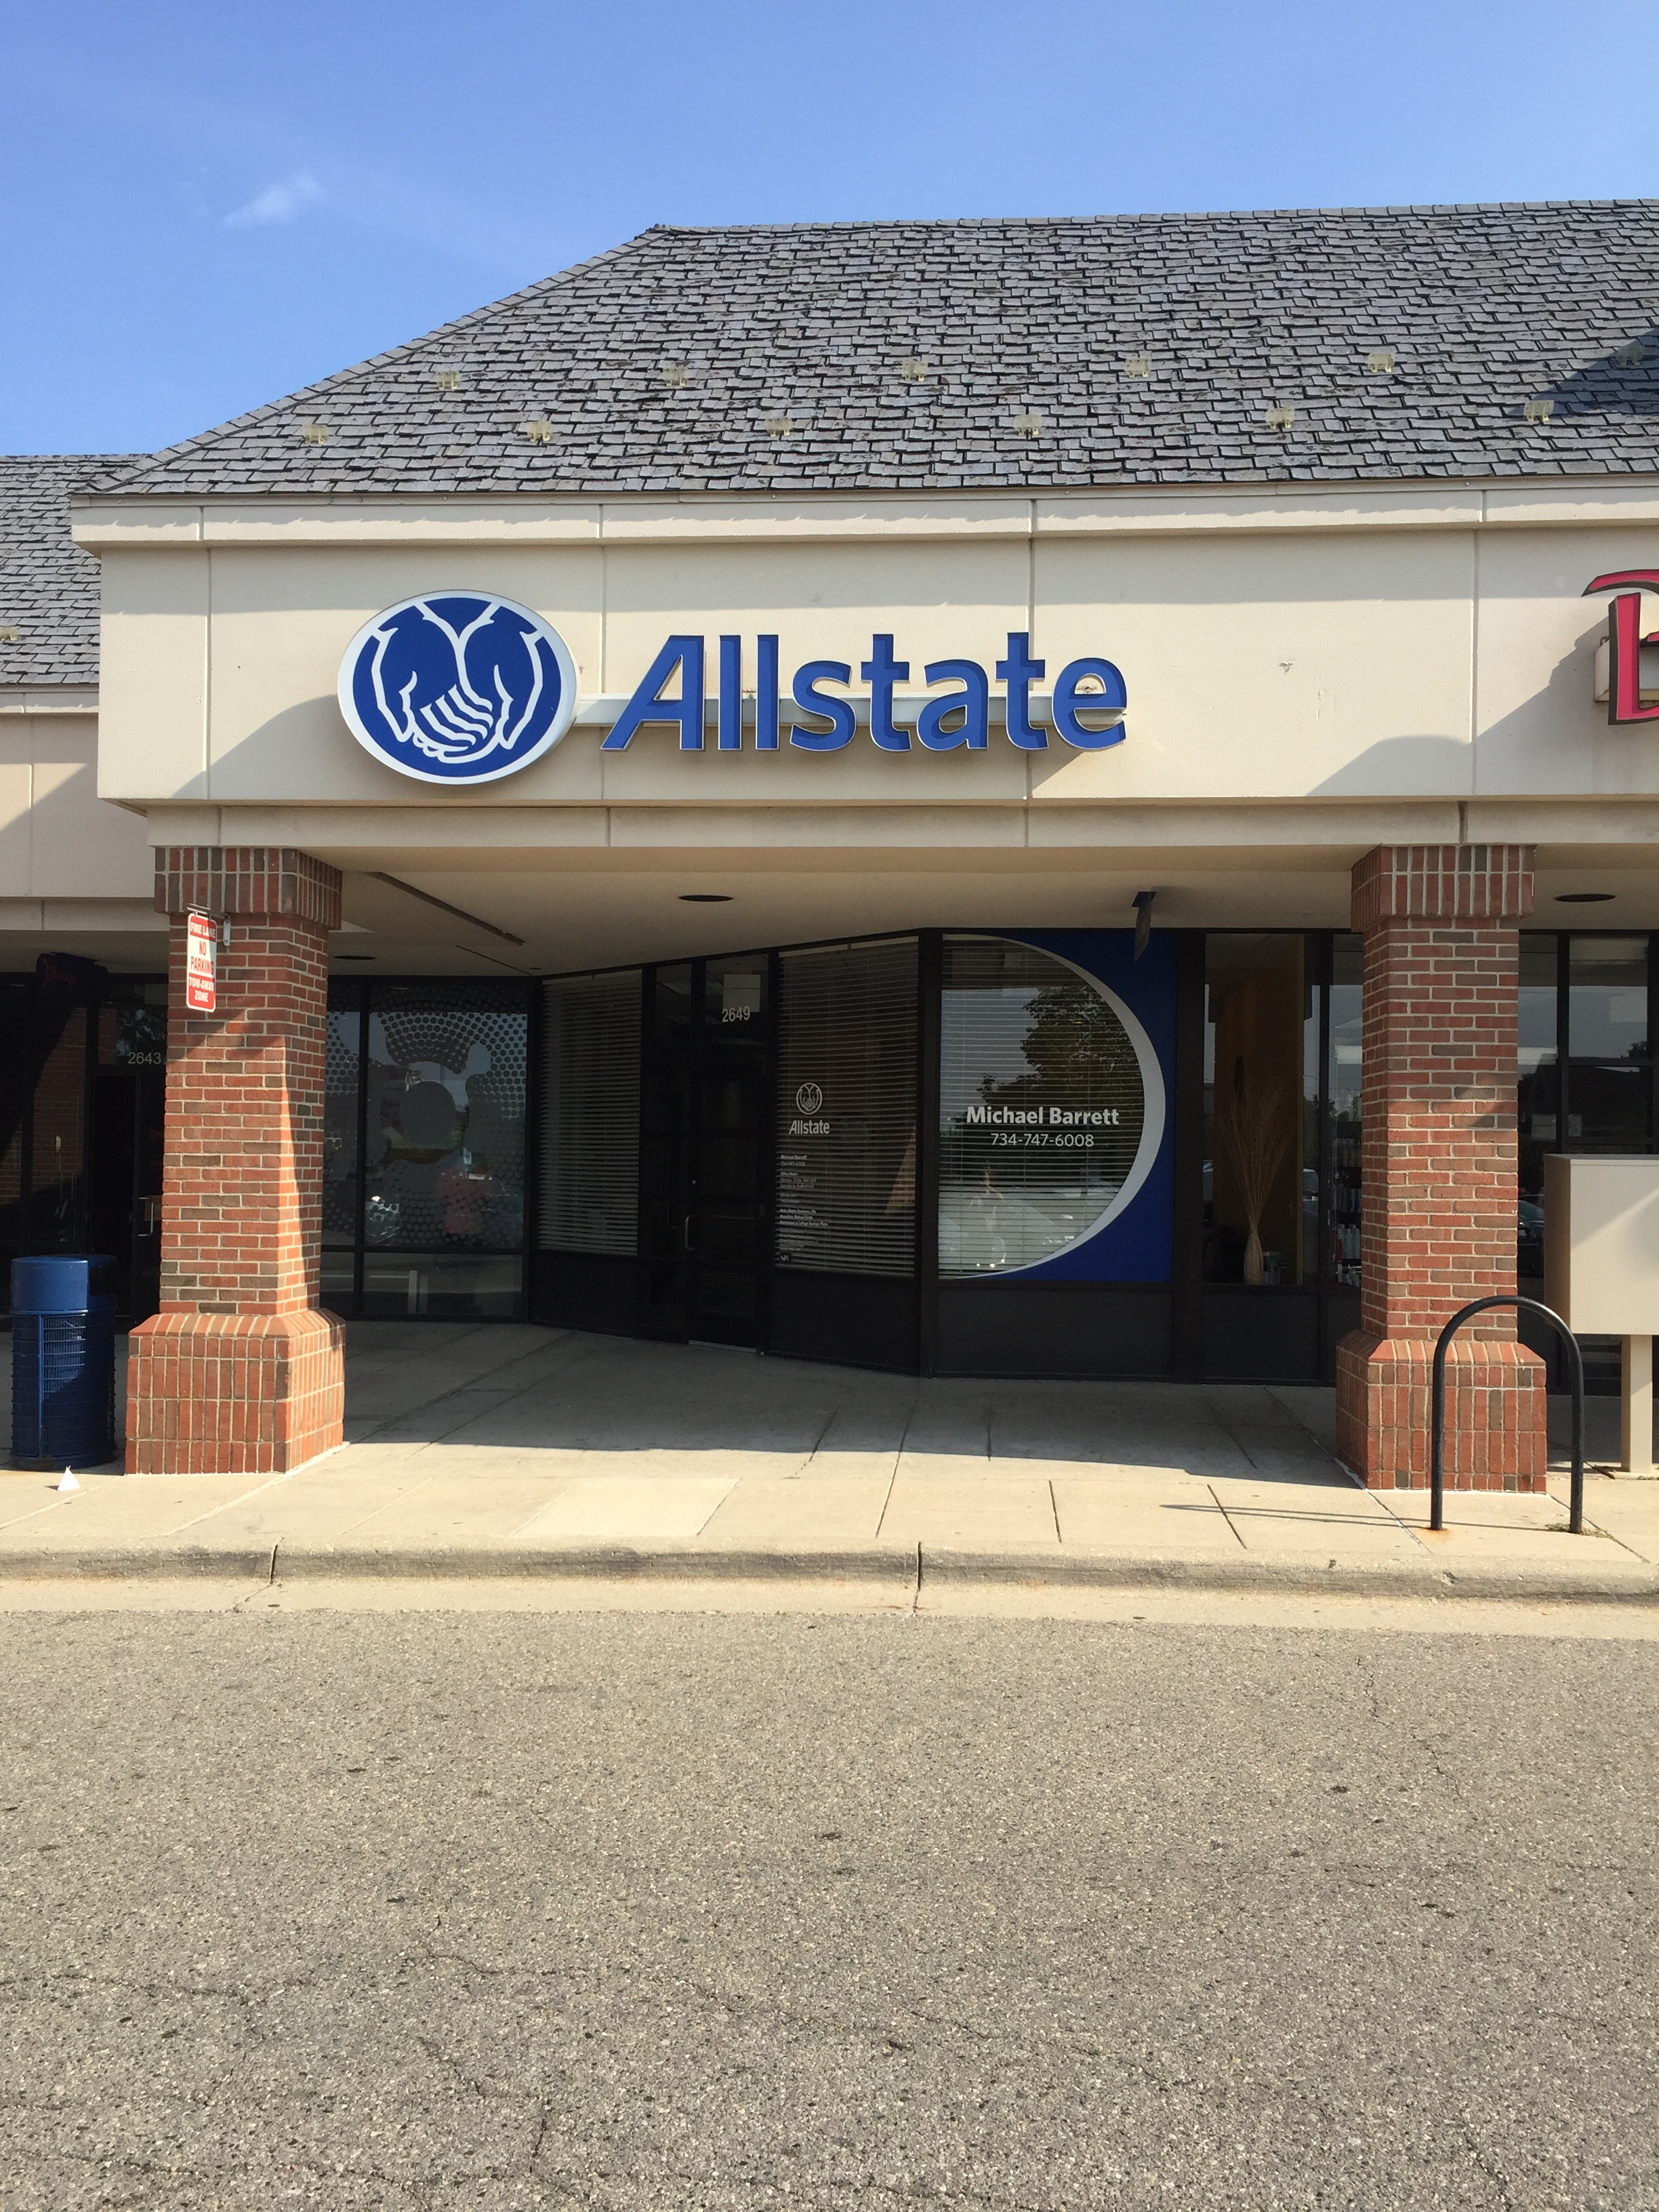 Life home car insurance quotes in ann arbor mi for Allstate motor club hotel discounts